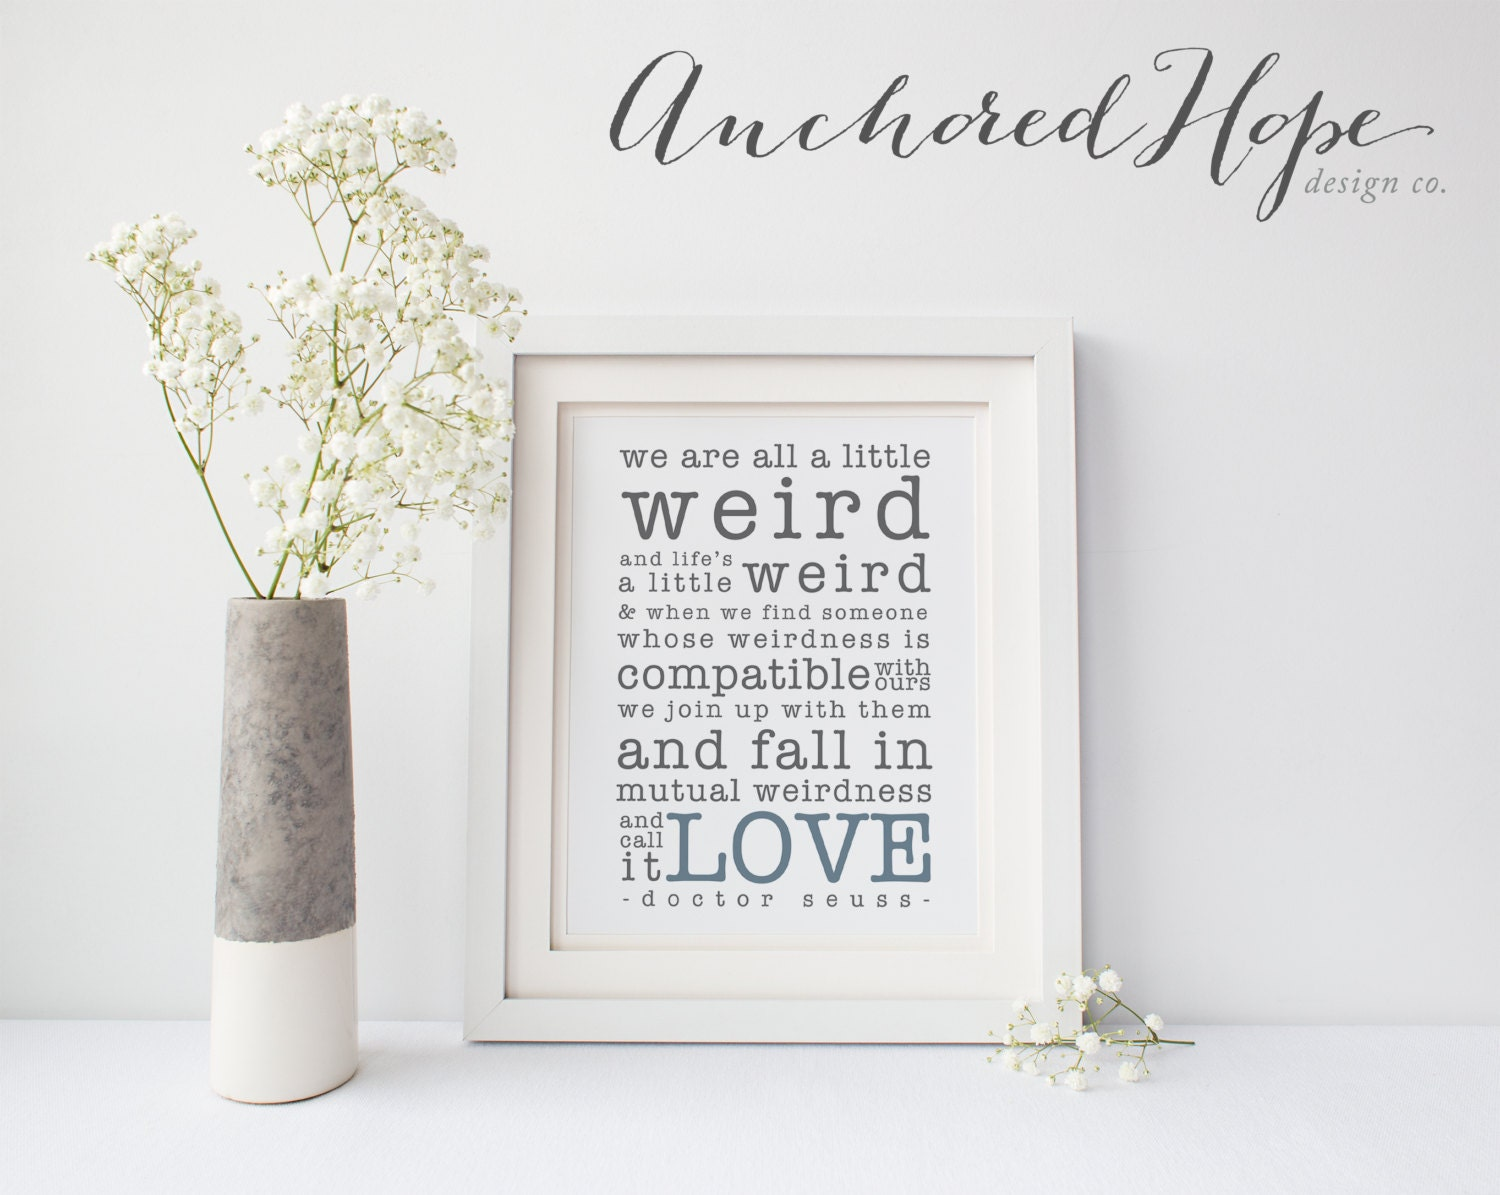 Dr Seuss Weird Love Quote Poster Drseuss Weird Quote Love Wedding Anniversary Gift